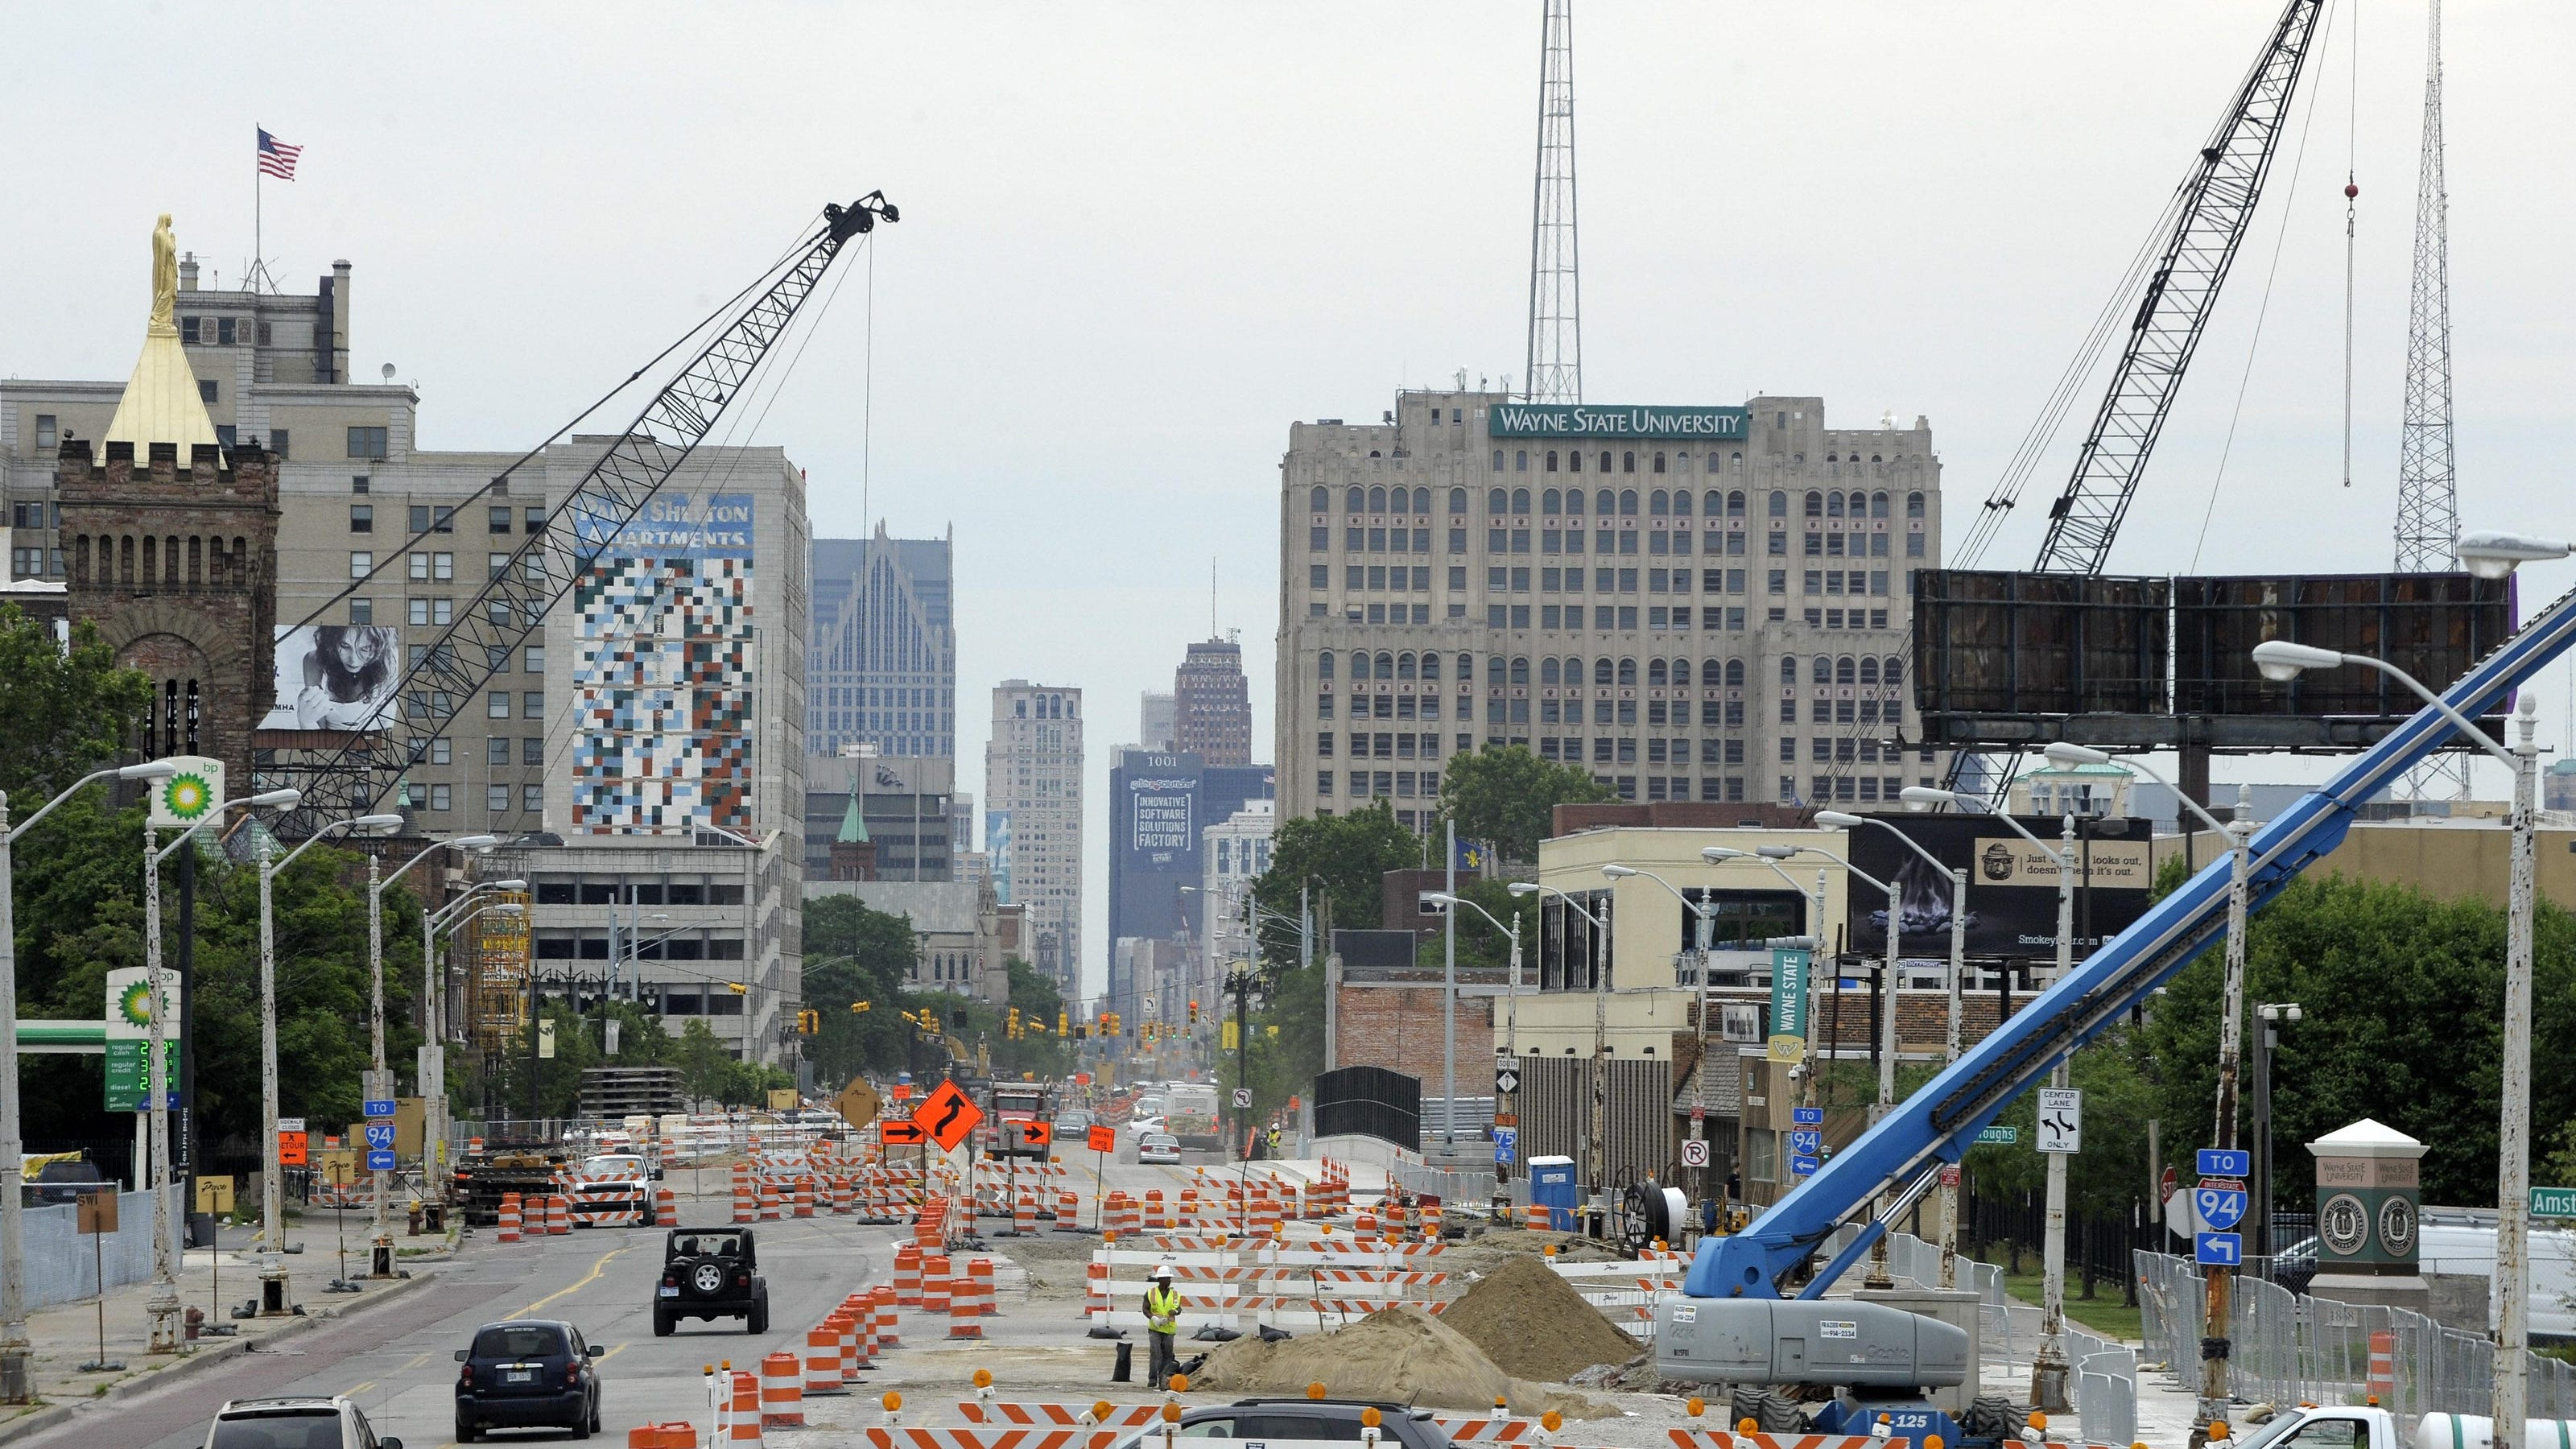 M 1 Rail Helps Get Woodward Developments Rolling In Detroit